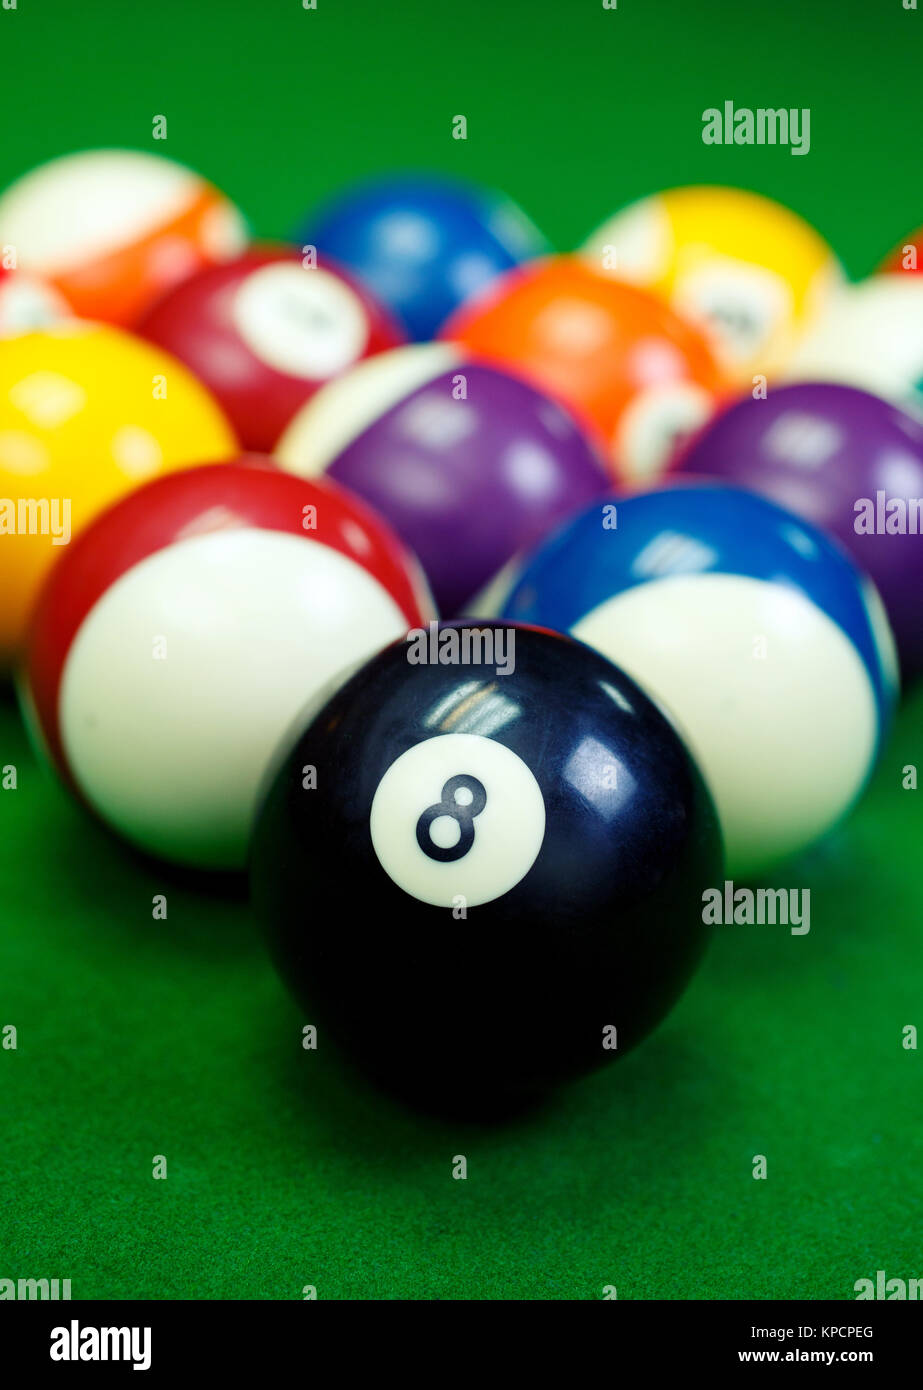 Billiard Balls On A Green Pool Table Closeup Stock Photo - Pool table with pegs